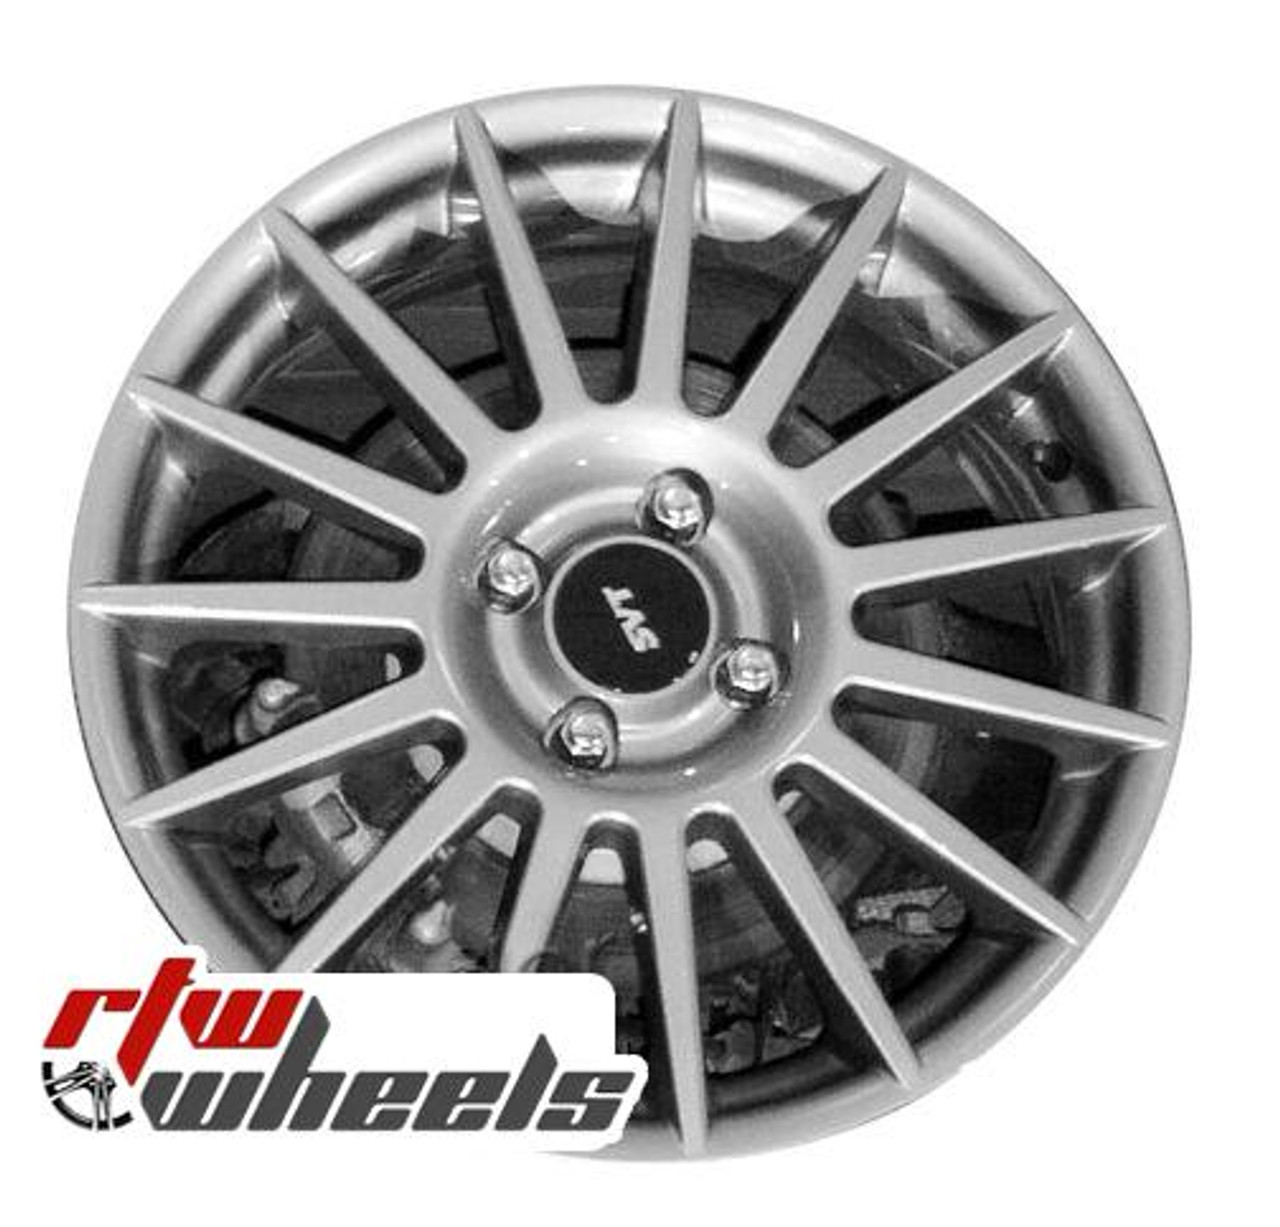 Ford Focus Wheels >> Ford Focus Wheels 2002 2011 17 Silver Rims 3507